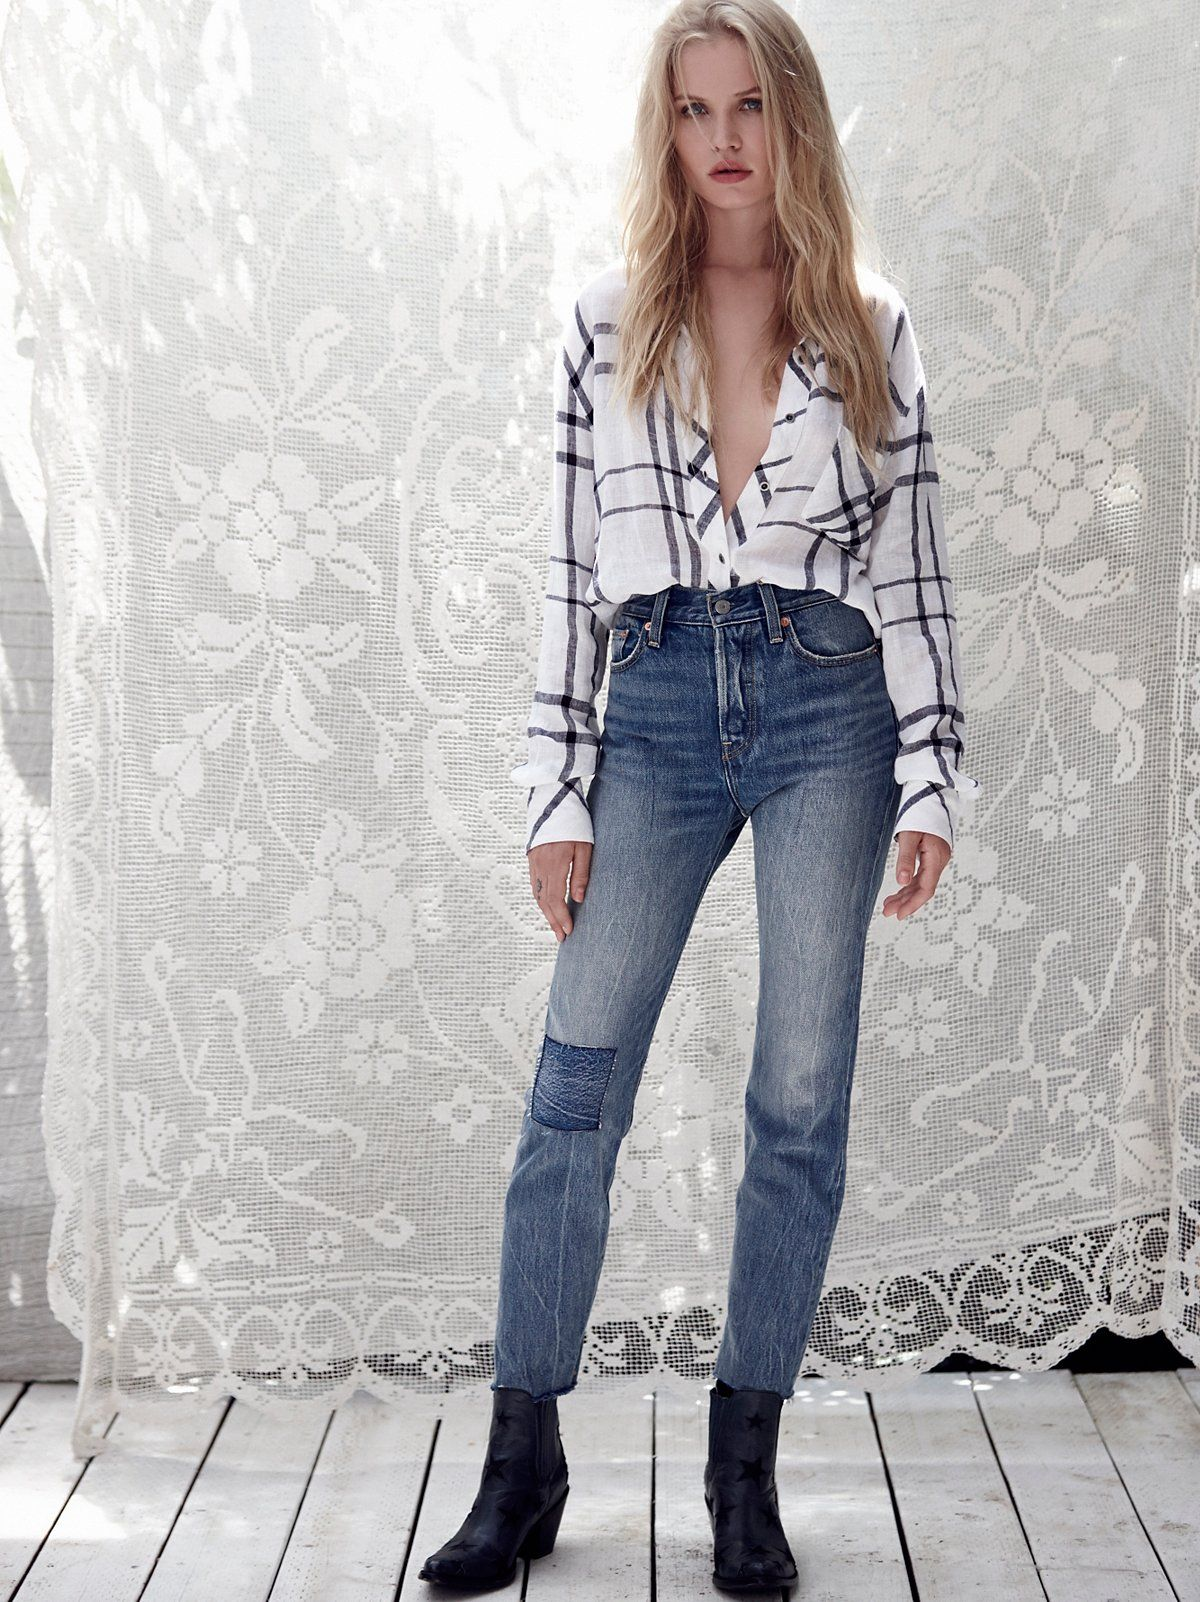 Levi's Levi's Wedgie Icon Patched Jeans at Free People Clothing Boutique